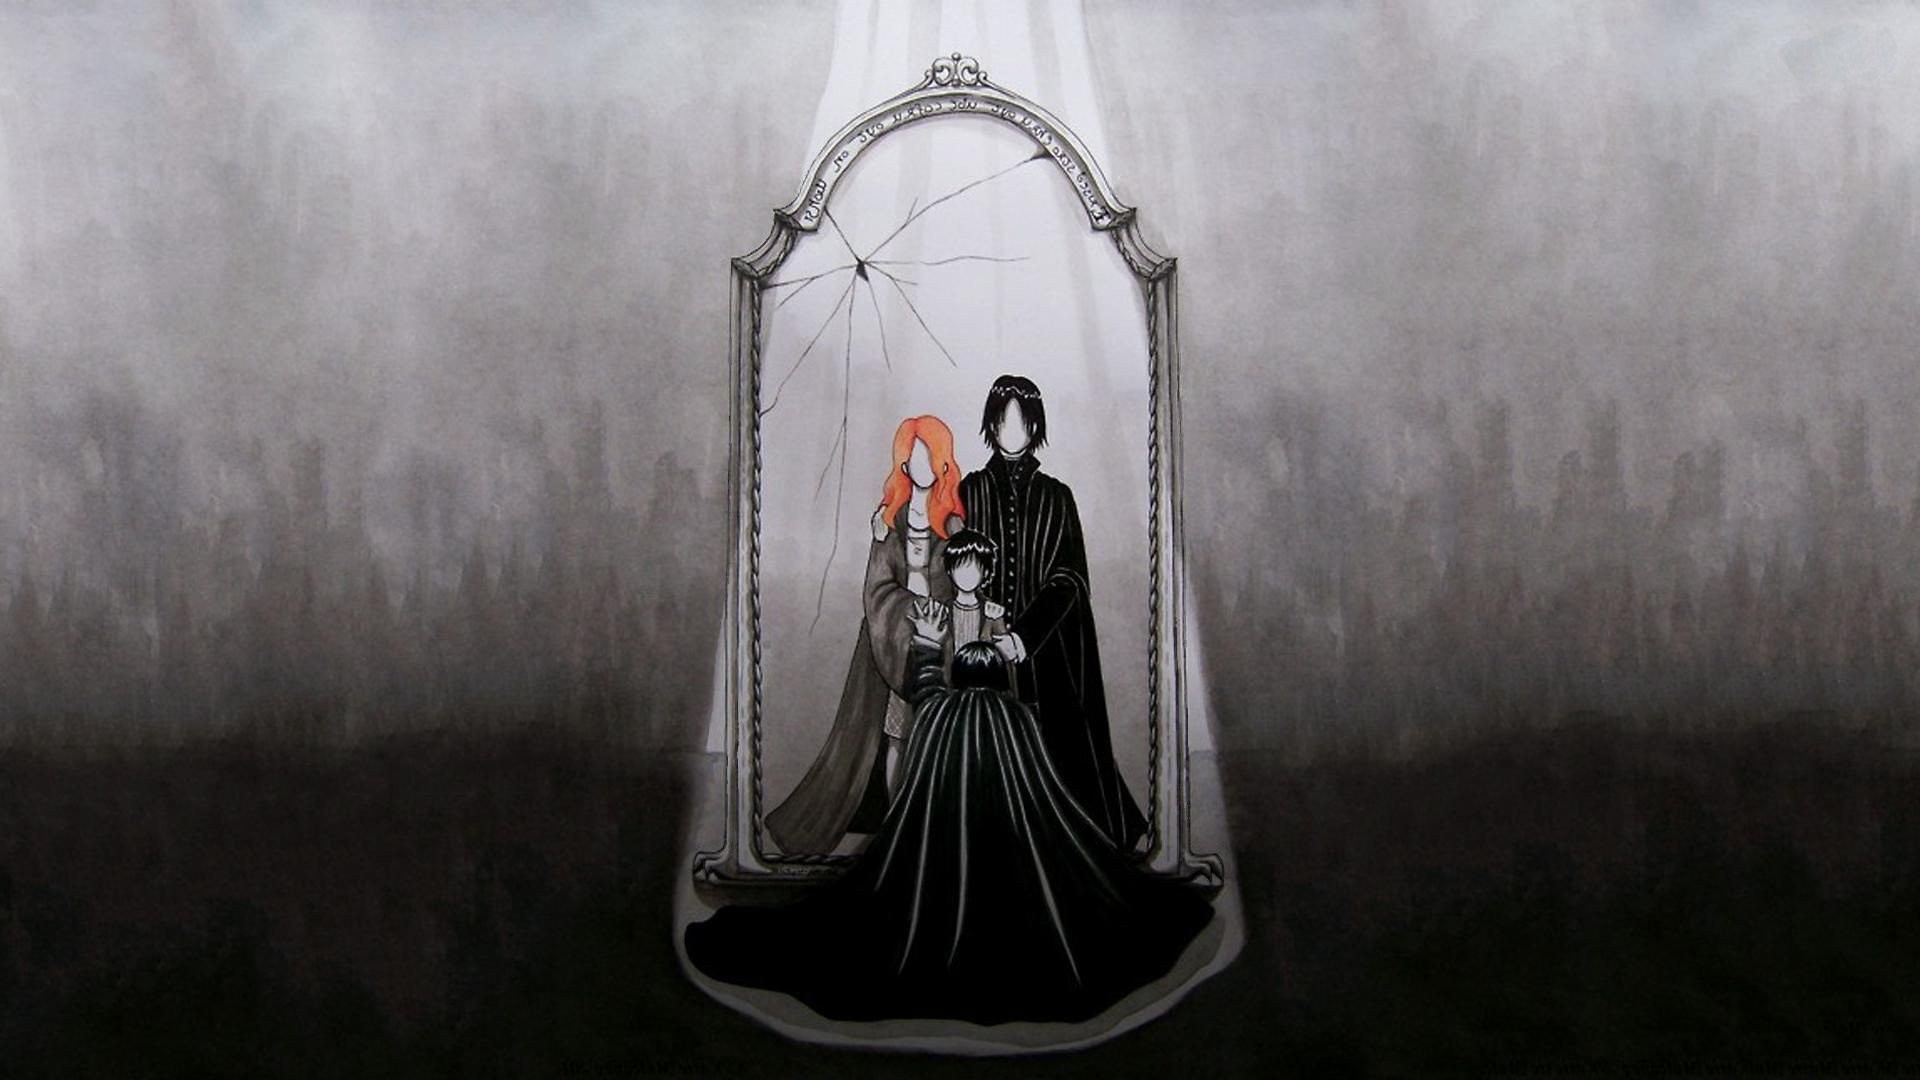 Harry Potter And The Deathly Hallows Artwork Severus Snape